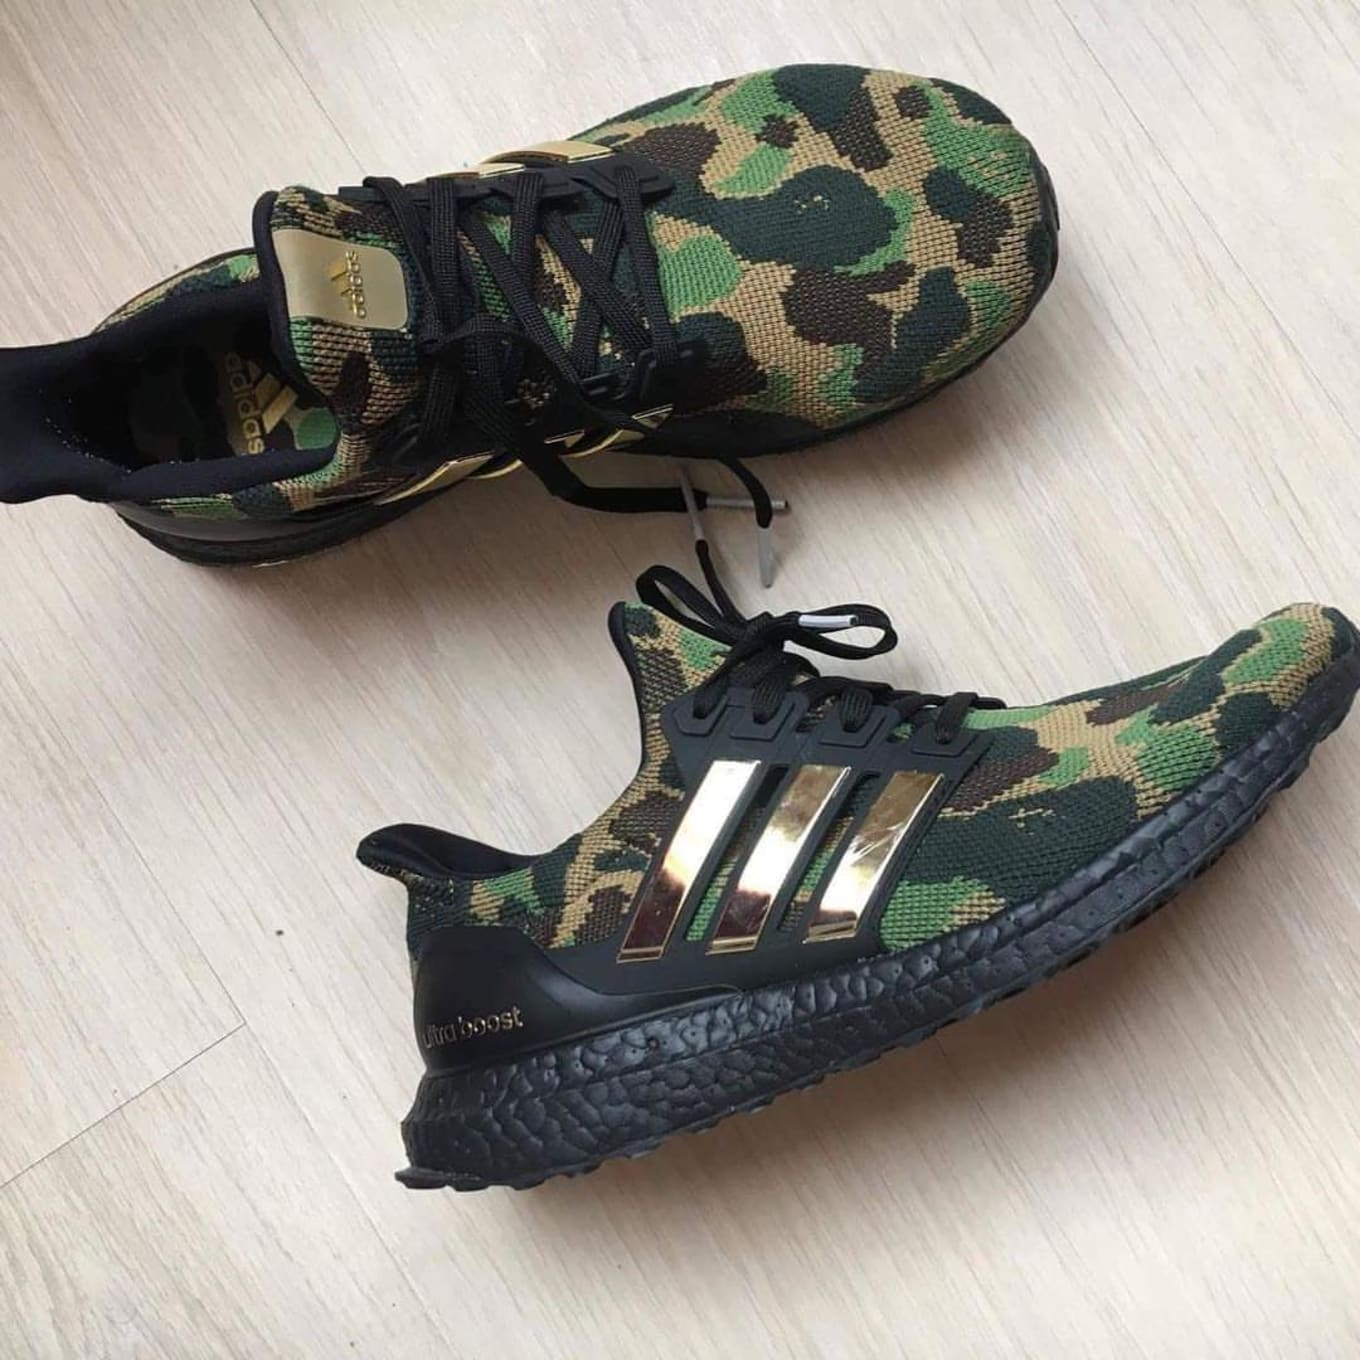 2f9338f8 Bape x Adidas Ultra Boost Collaboration Release Date | Sole Collector